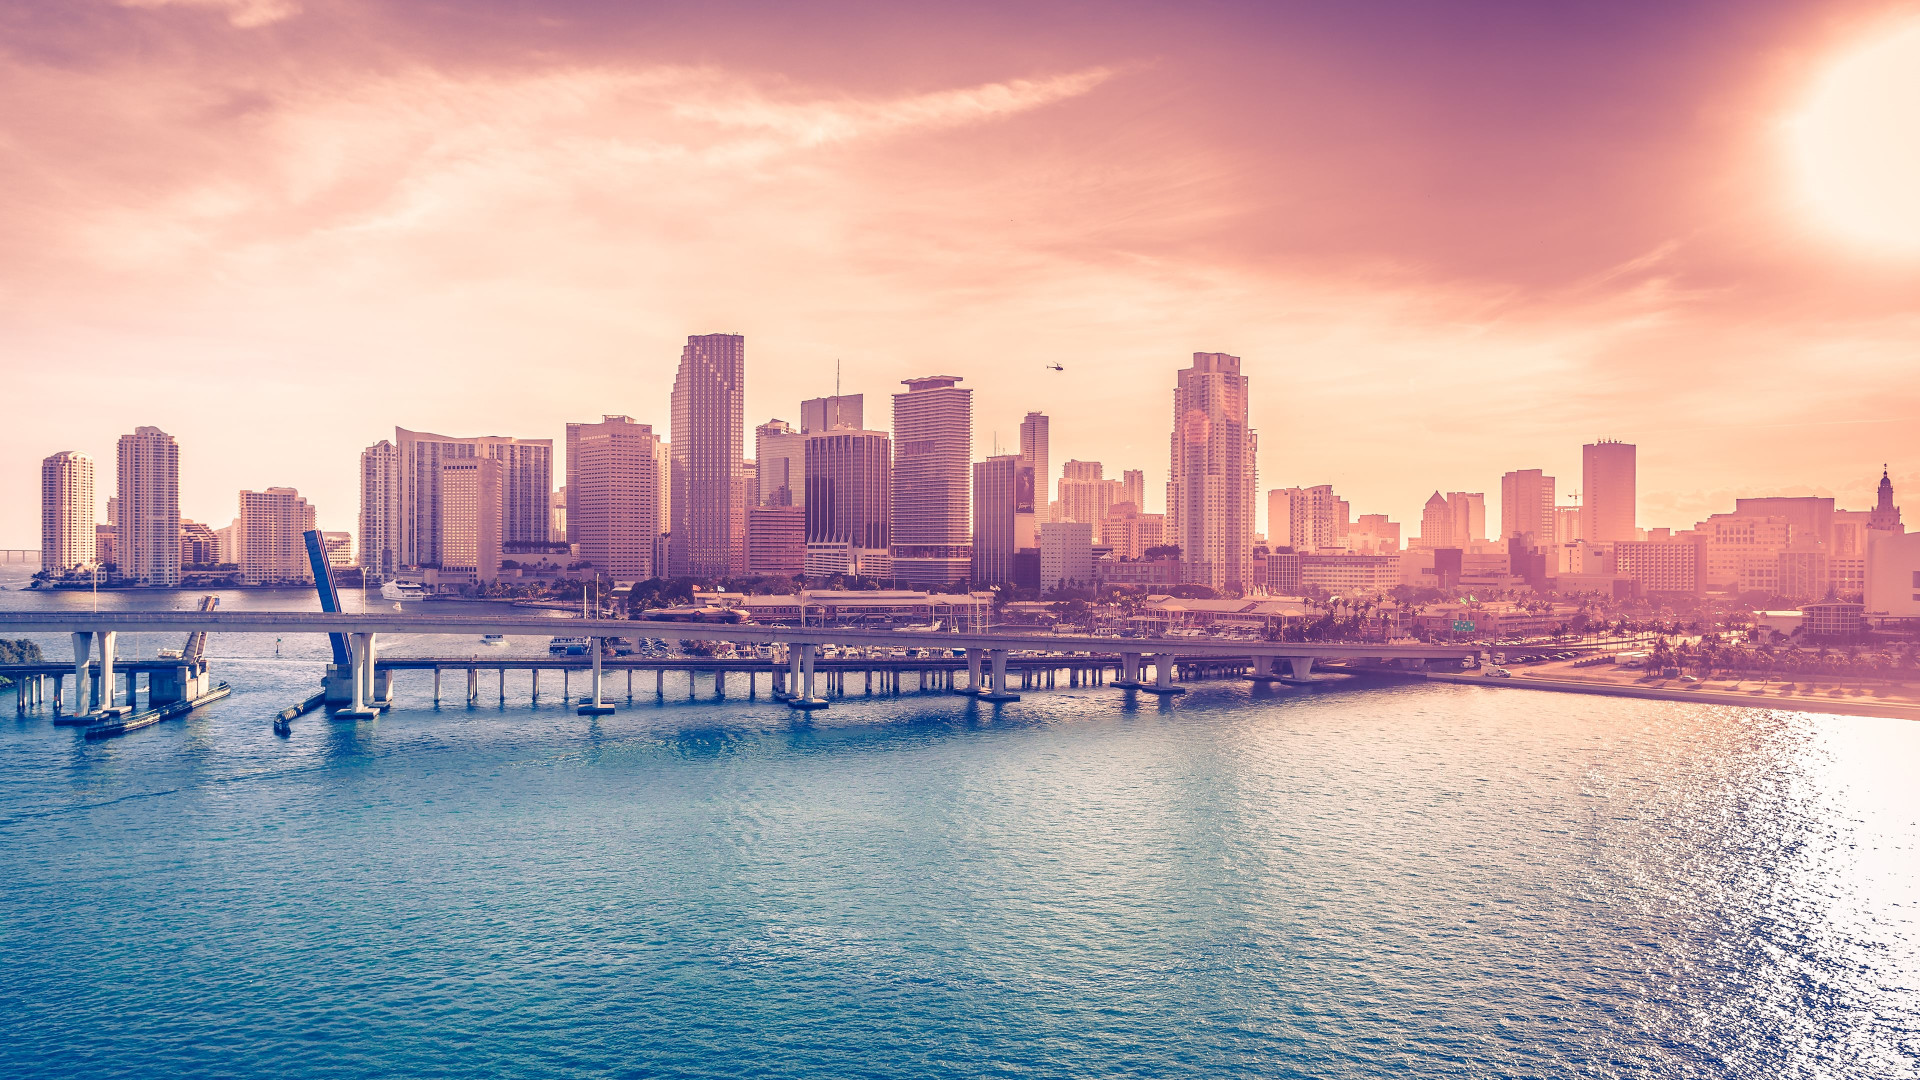 Miami Downtown wallpaper 1920x1080